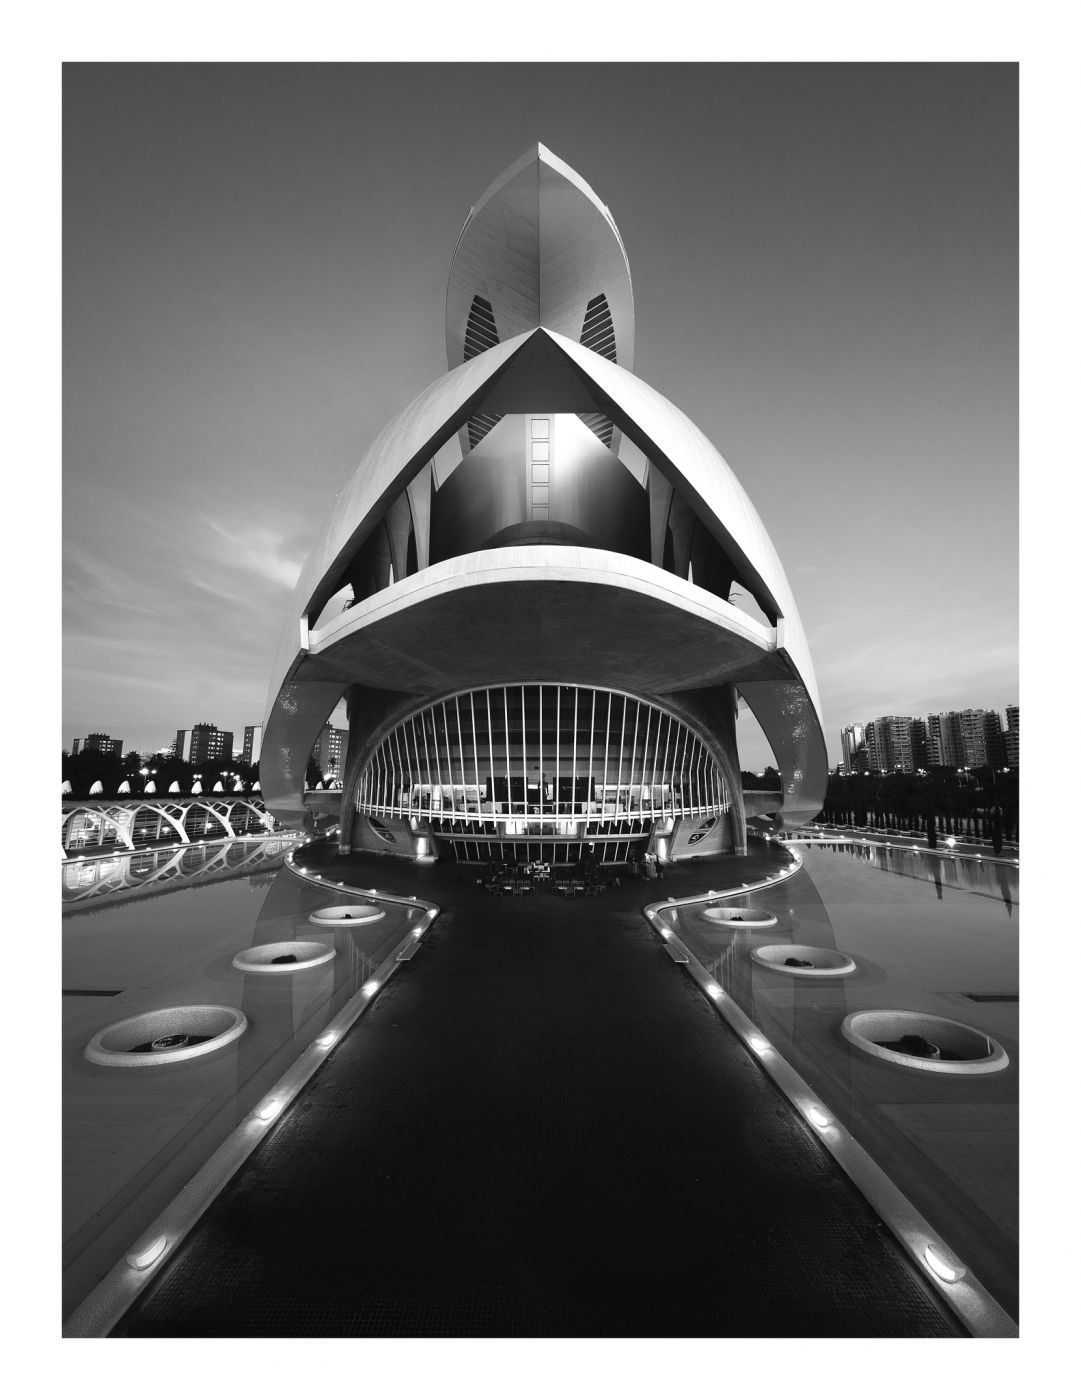 City of Arts and Sciences, From the Bridge, Spain